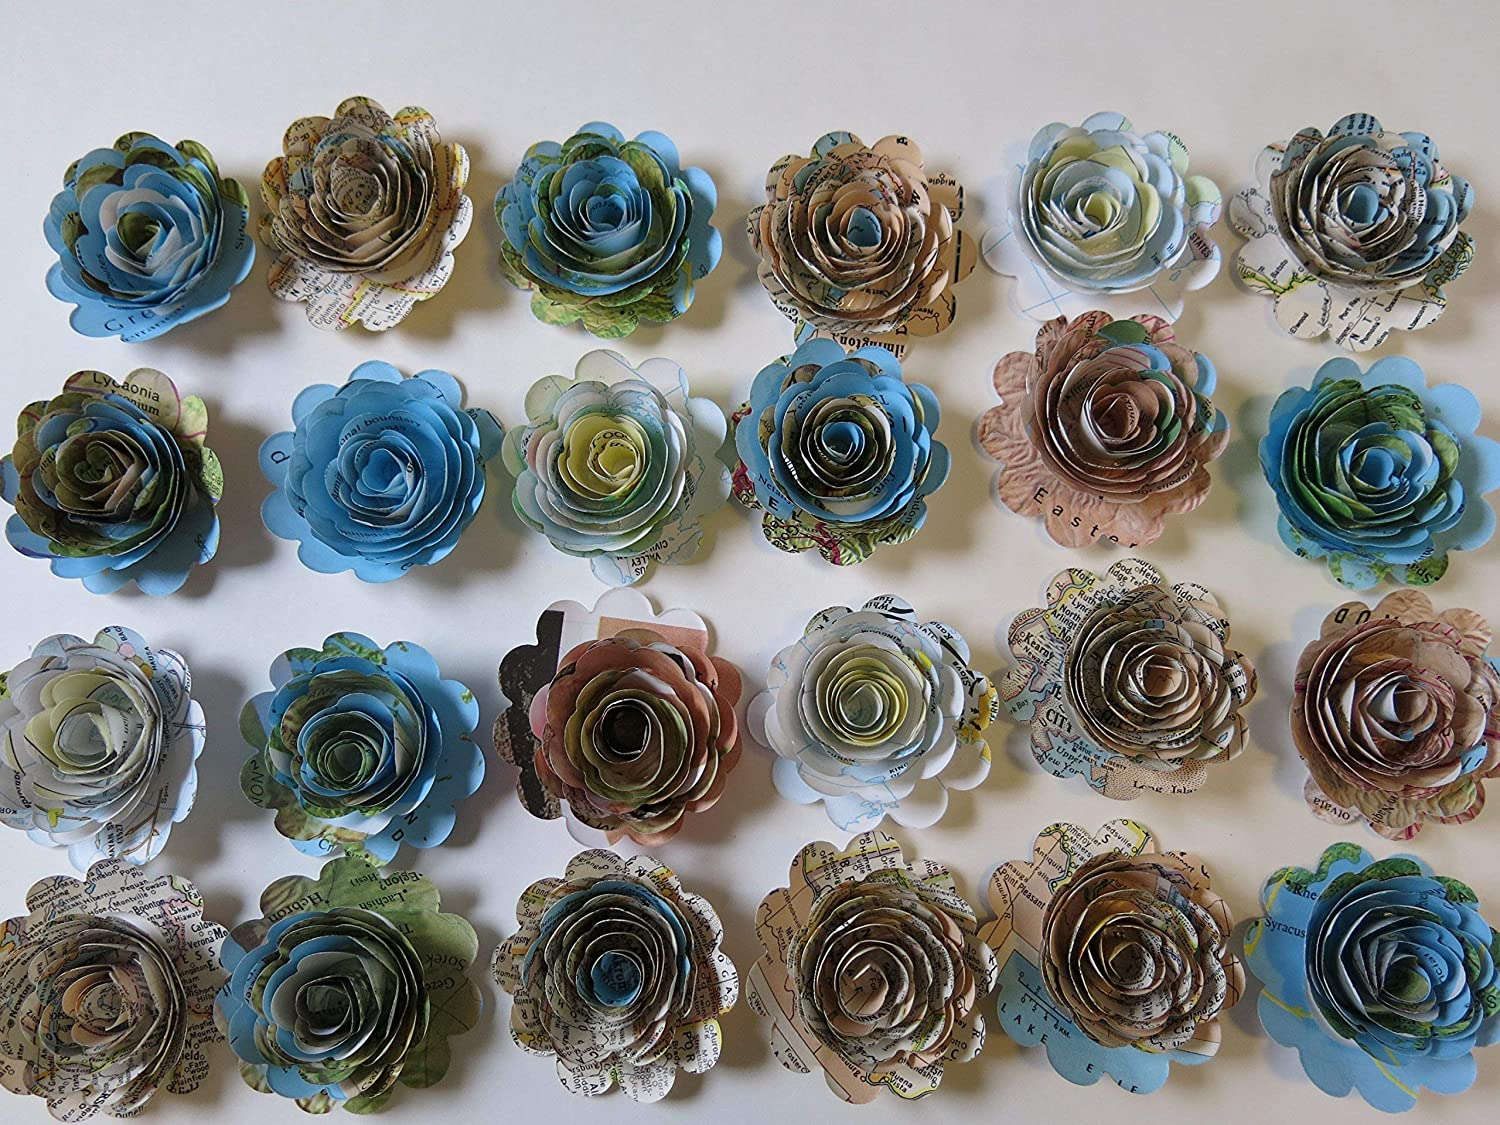 Scalloped Set 24 Pieces World Atlas Paper Flowers Loose 1 5 Roses Map Book Page Floral Decor Traveler Theme Bridal Shower Decoration Wedding